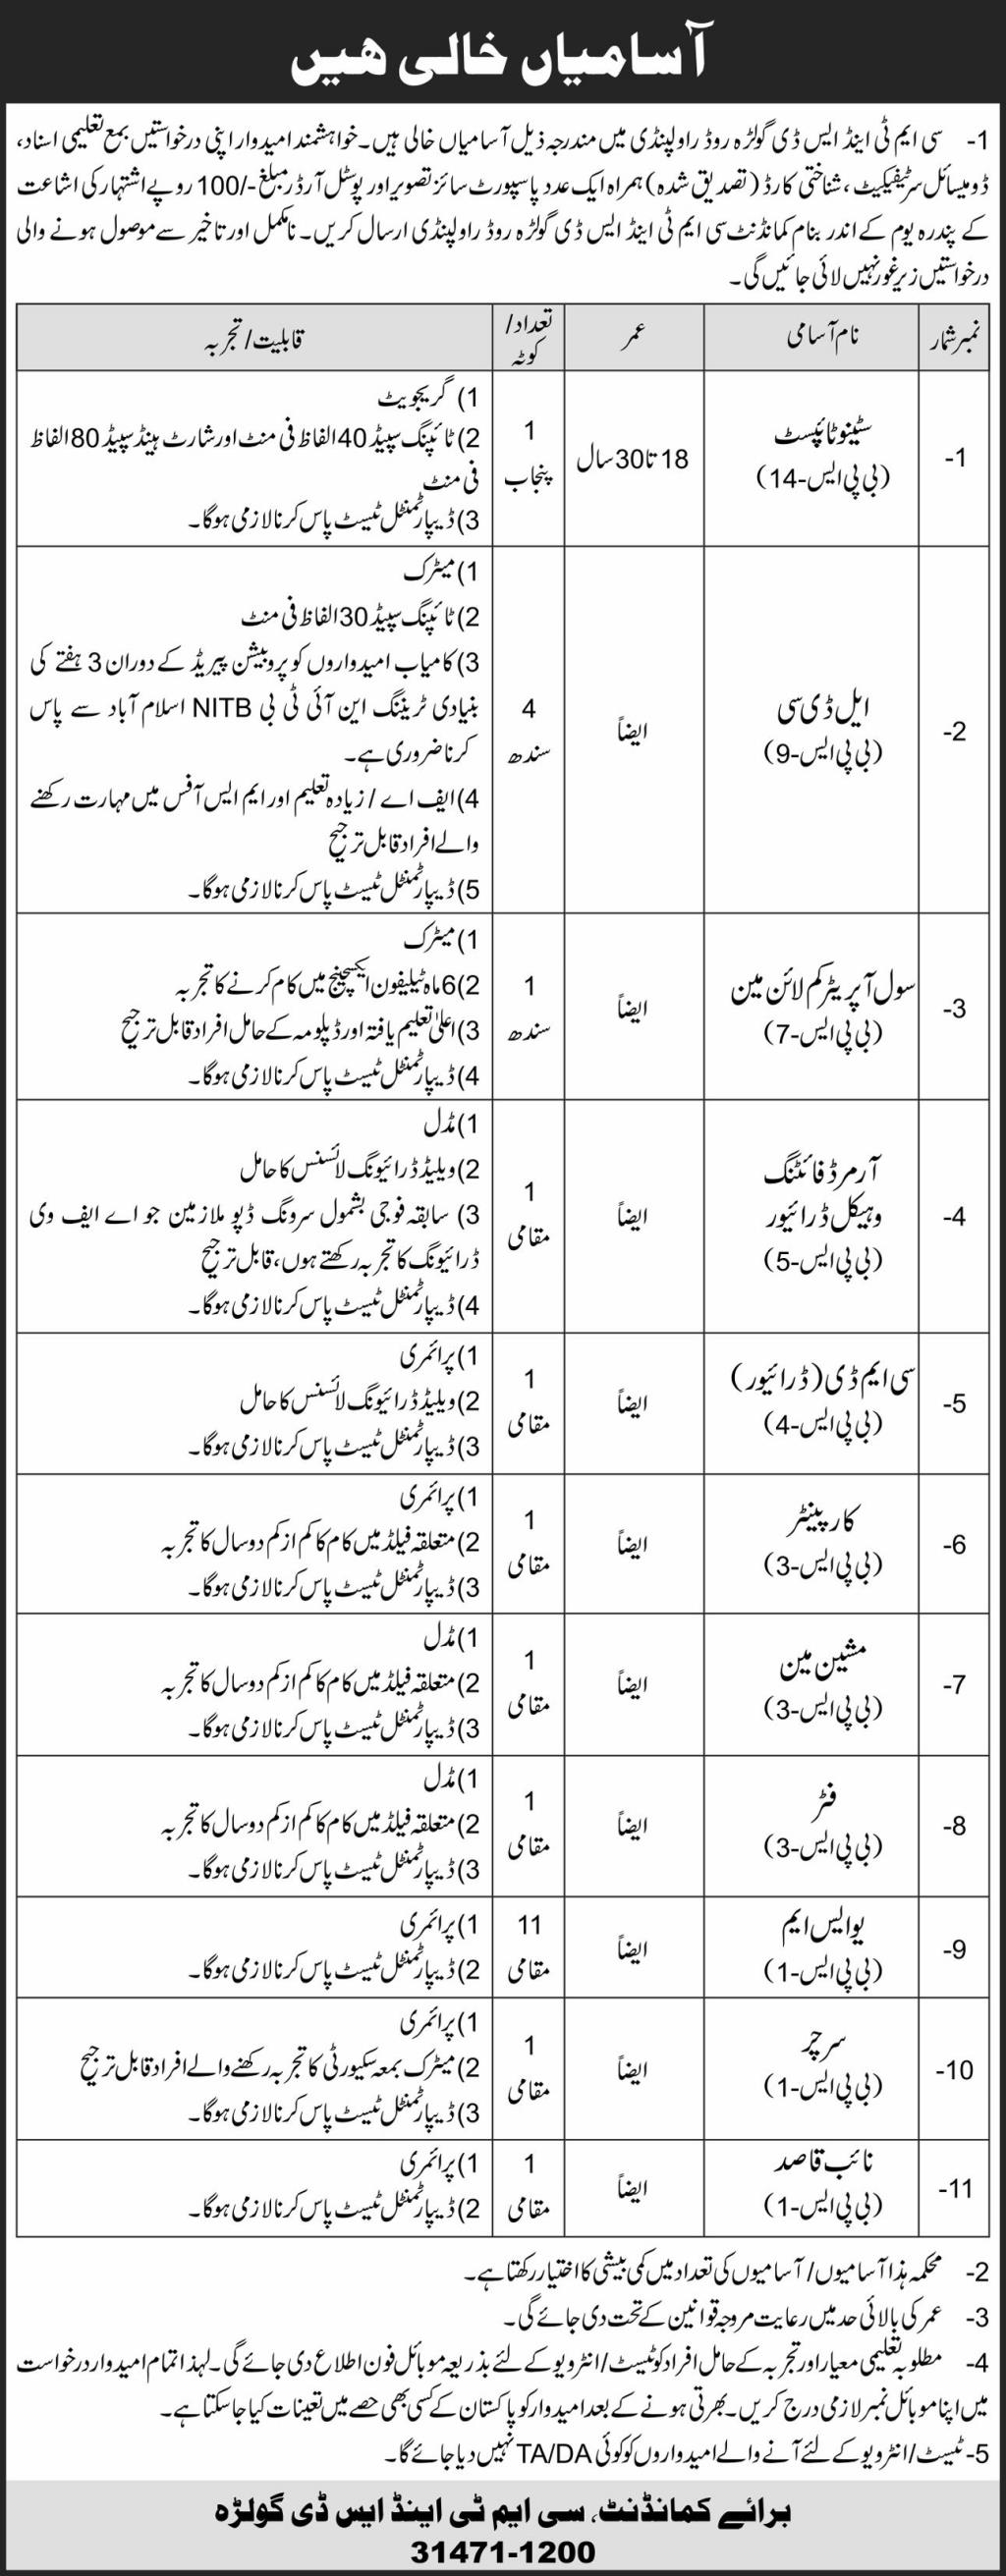 Latest Pak Army Jobs 2021 - CMT & SD Rawalpindi Cantt Jobs Jobs 2021 - Jobs For Primary, Middle, Matric, Intermediate Degree, Bachelor Degree, Master Degree Candidates